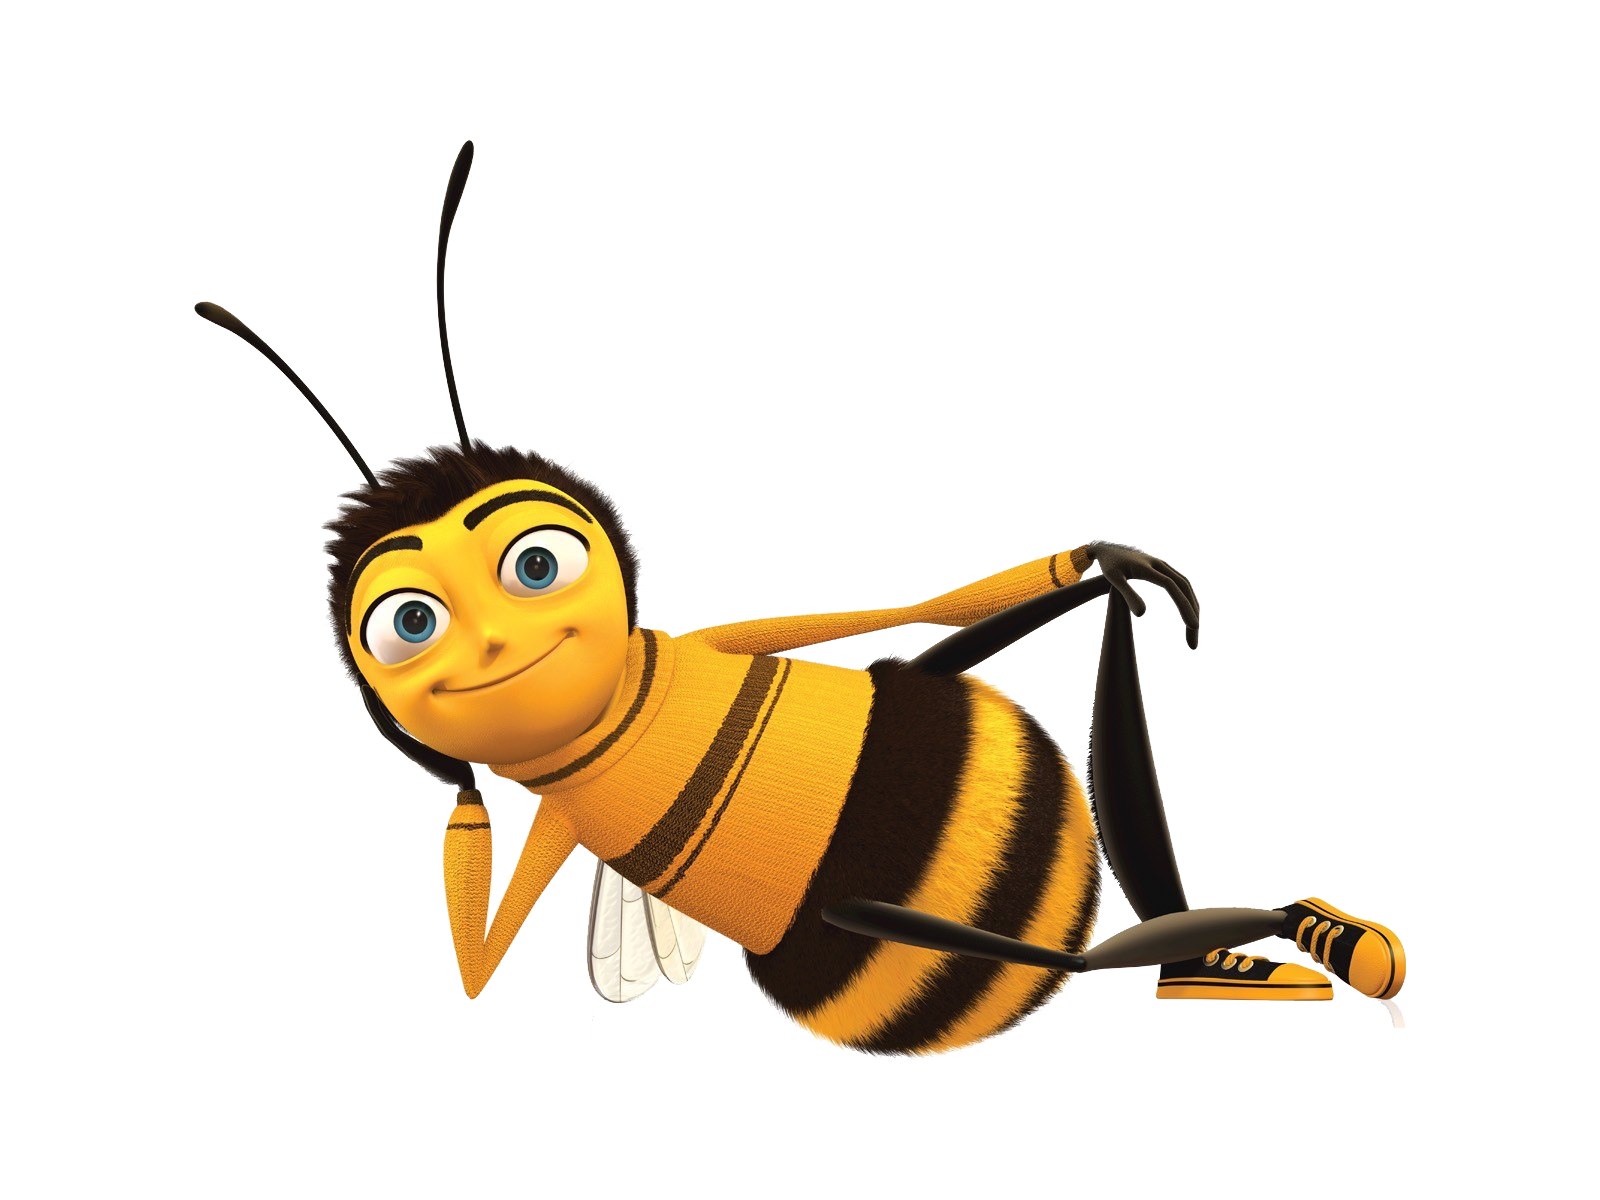 Free transparent images pluspng. Bee png svg library library